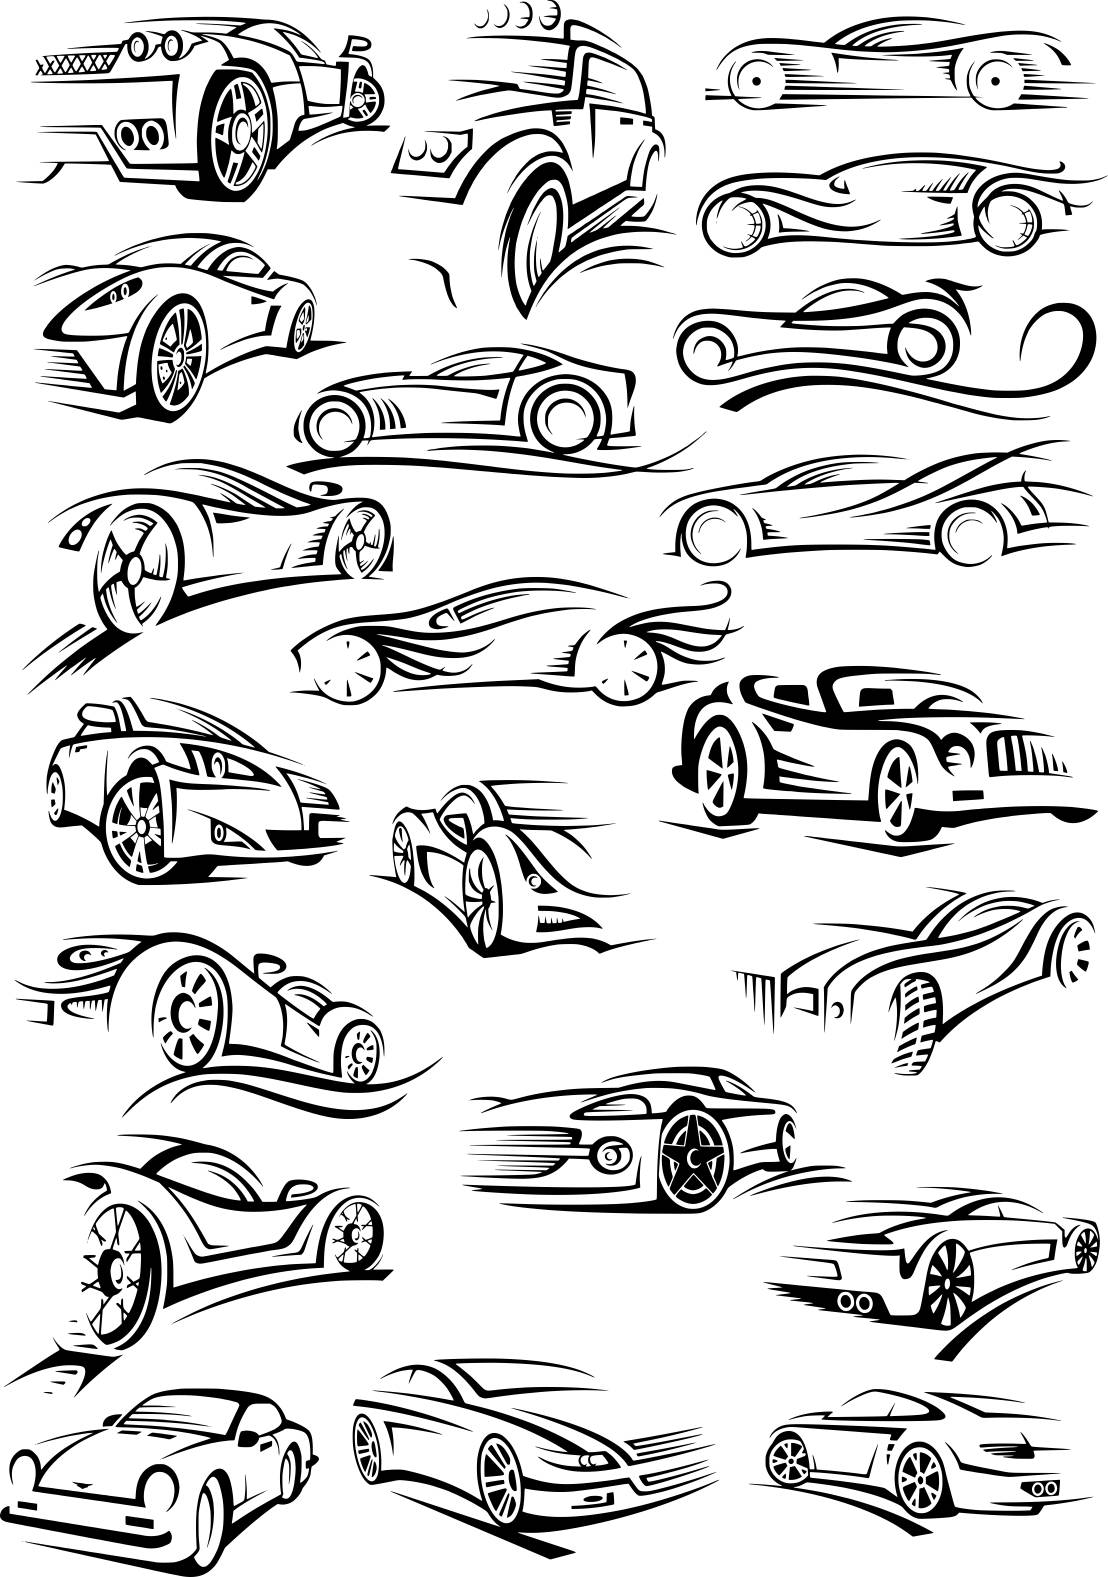 Cars Silhouette Stickers Free CDR Vectors Art